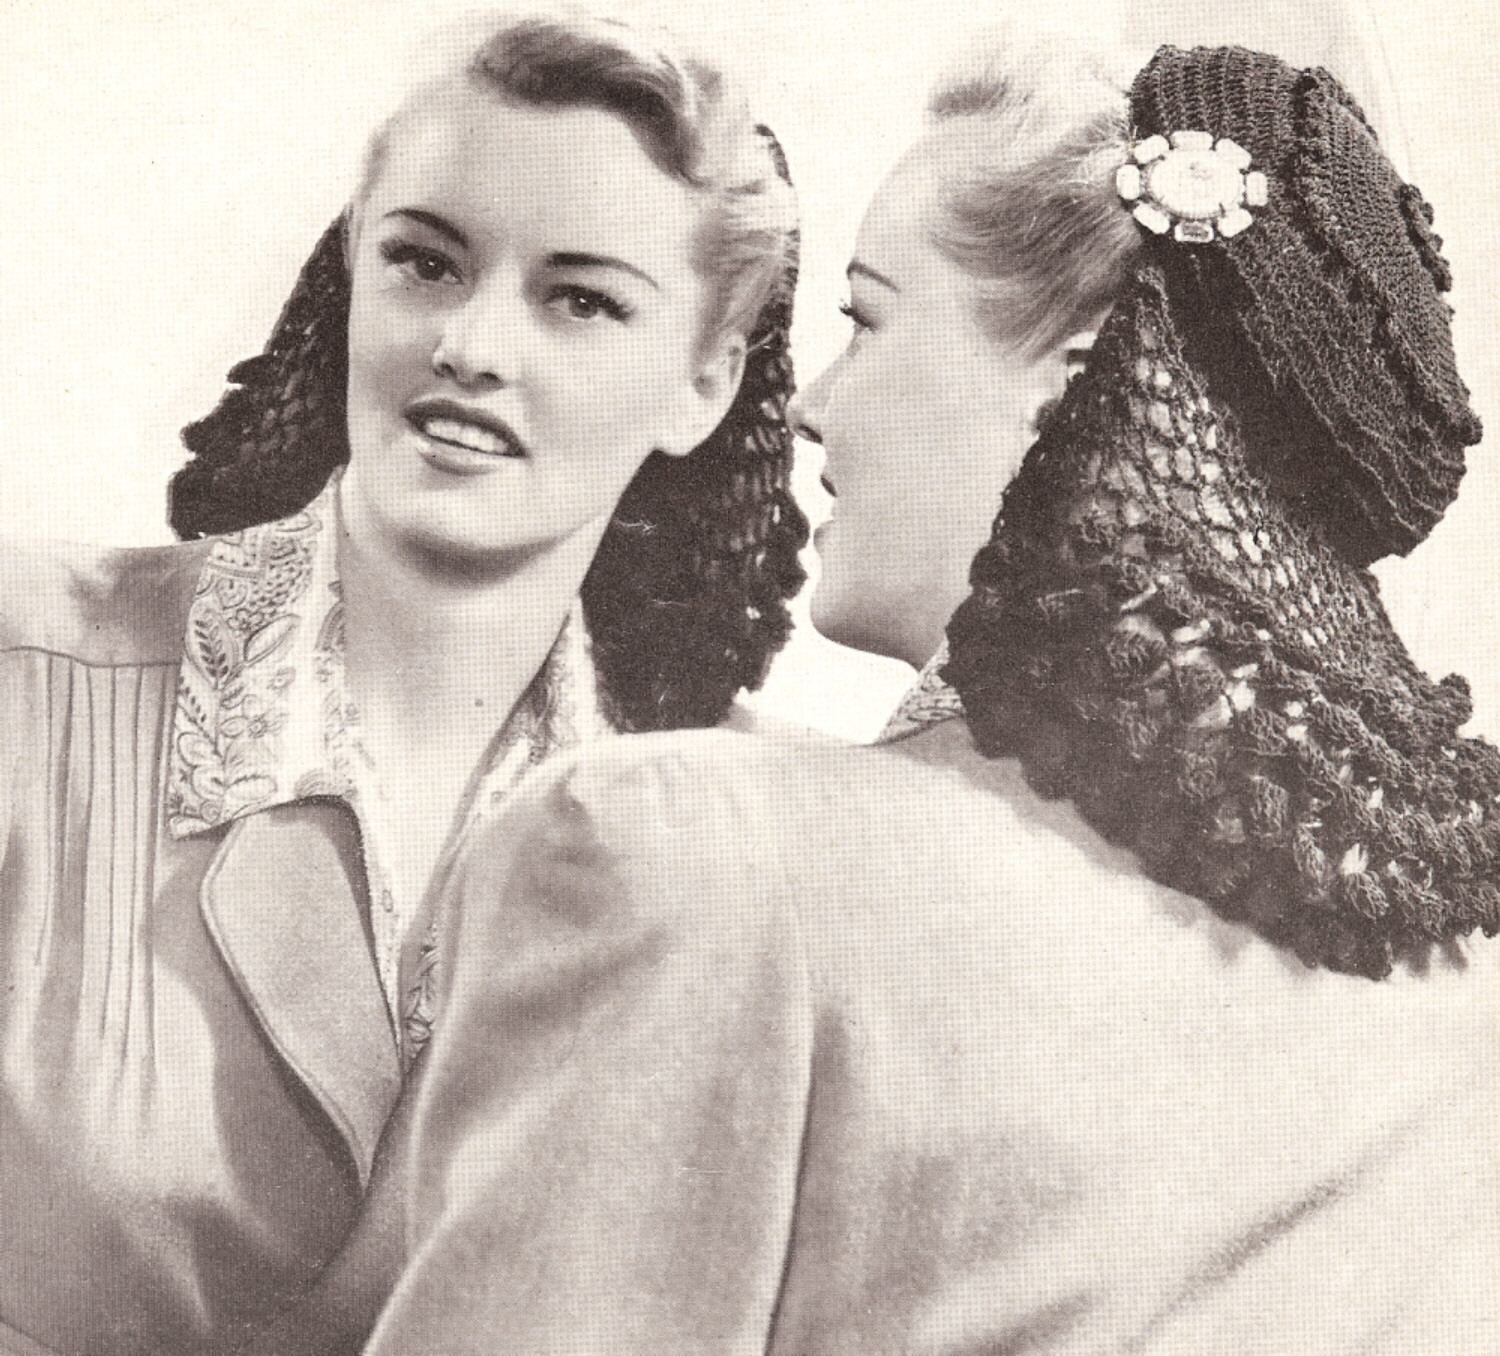 Crochet Hair On Net Cap : Vintage Crochet Snood Hat Cap 1940s hair net pattern